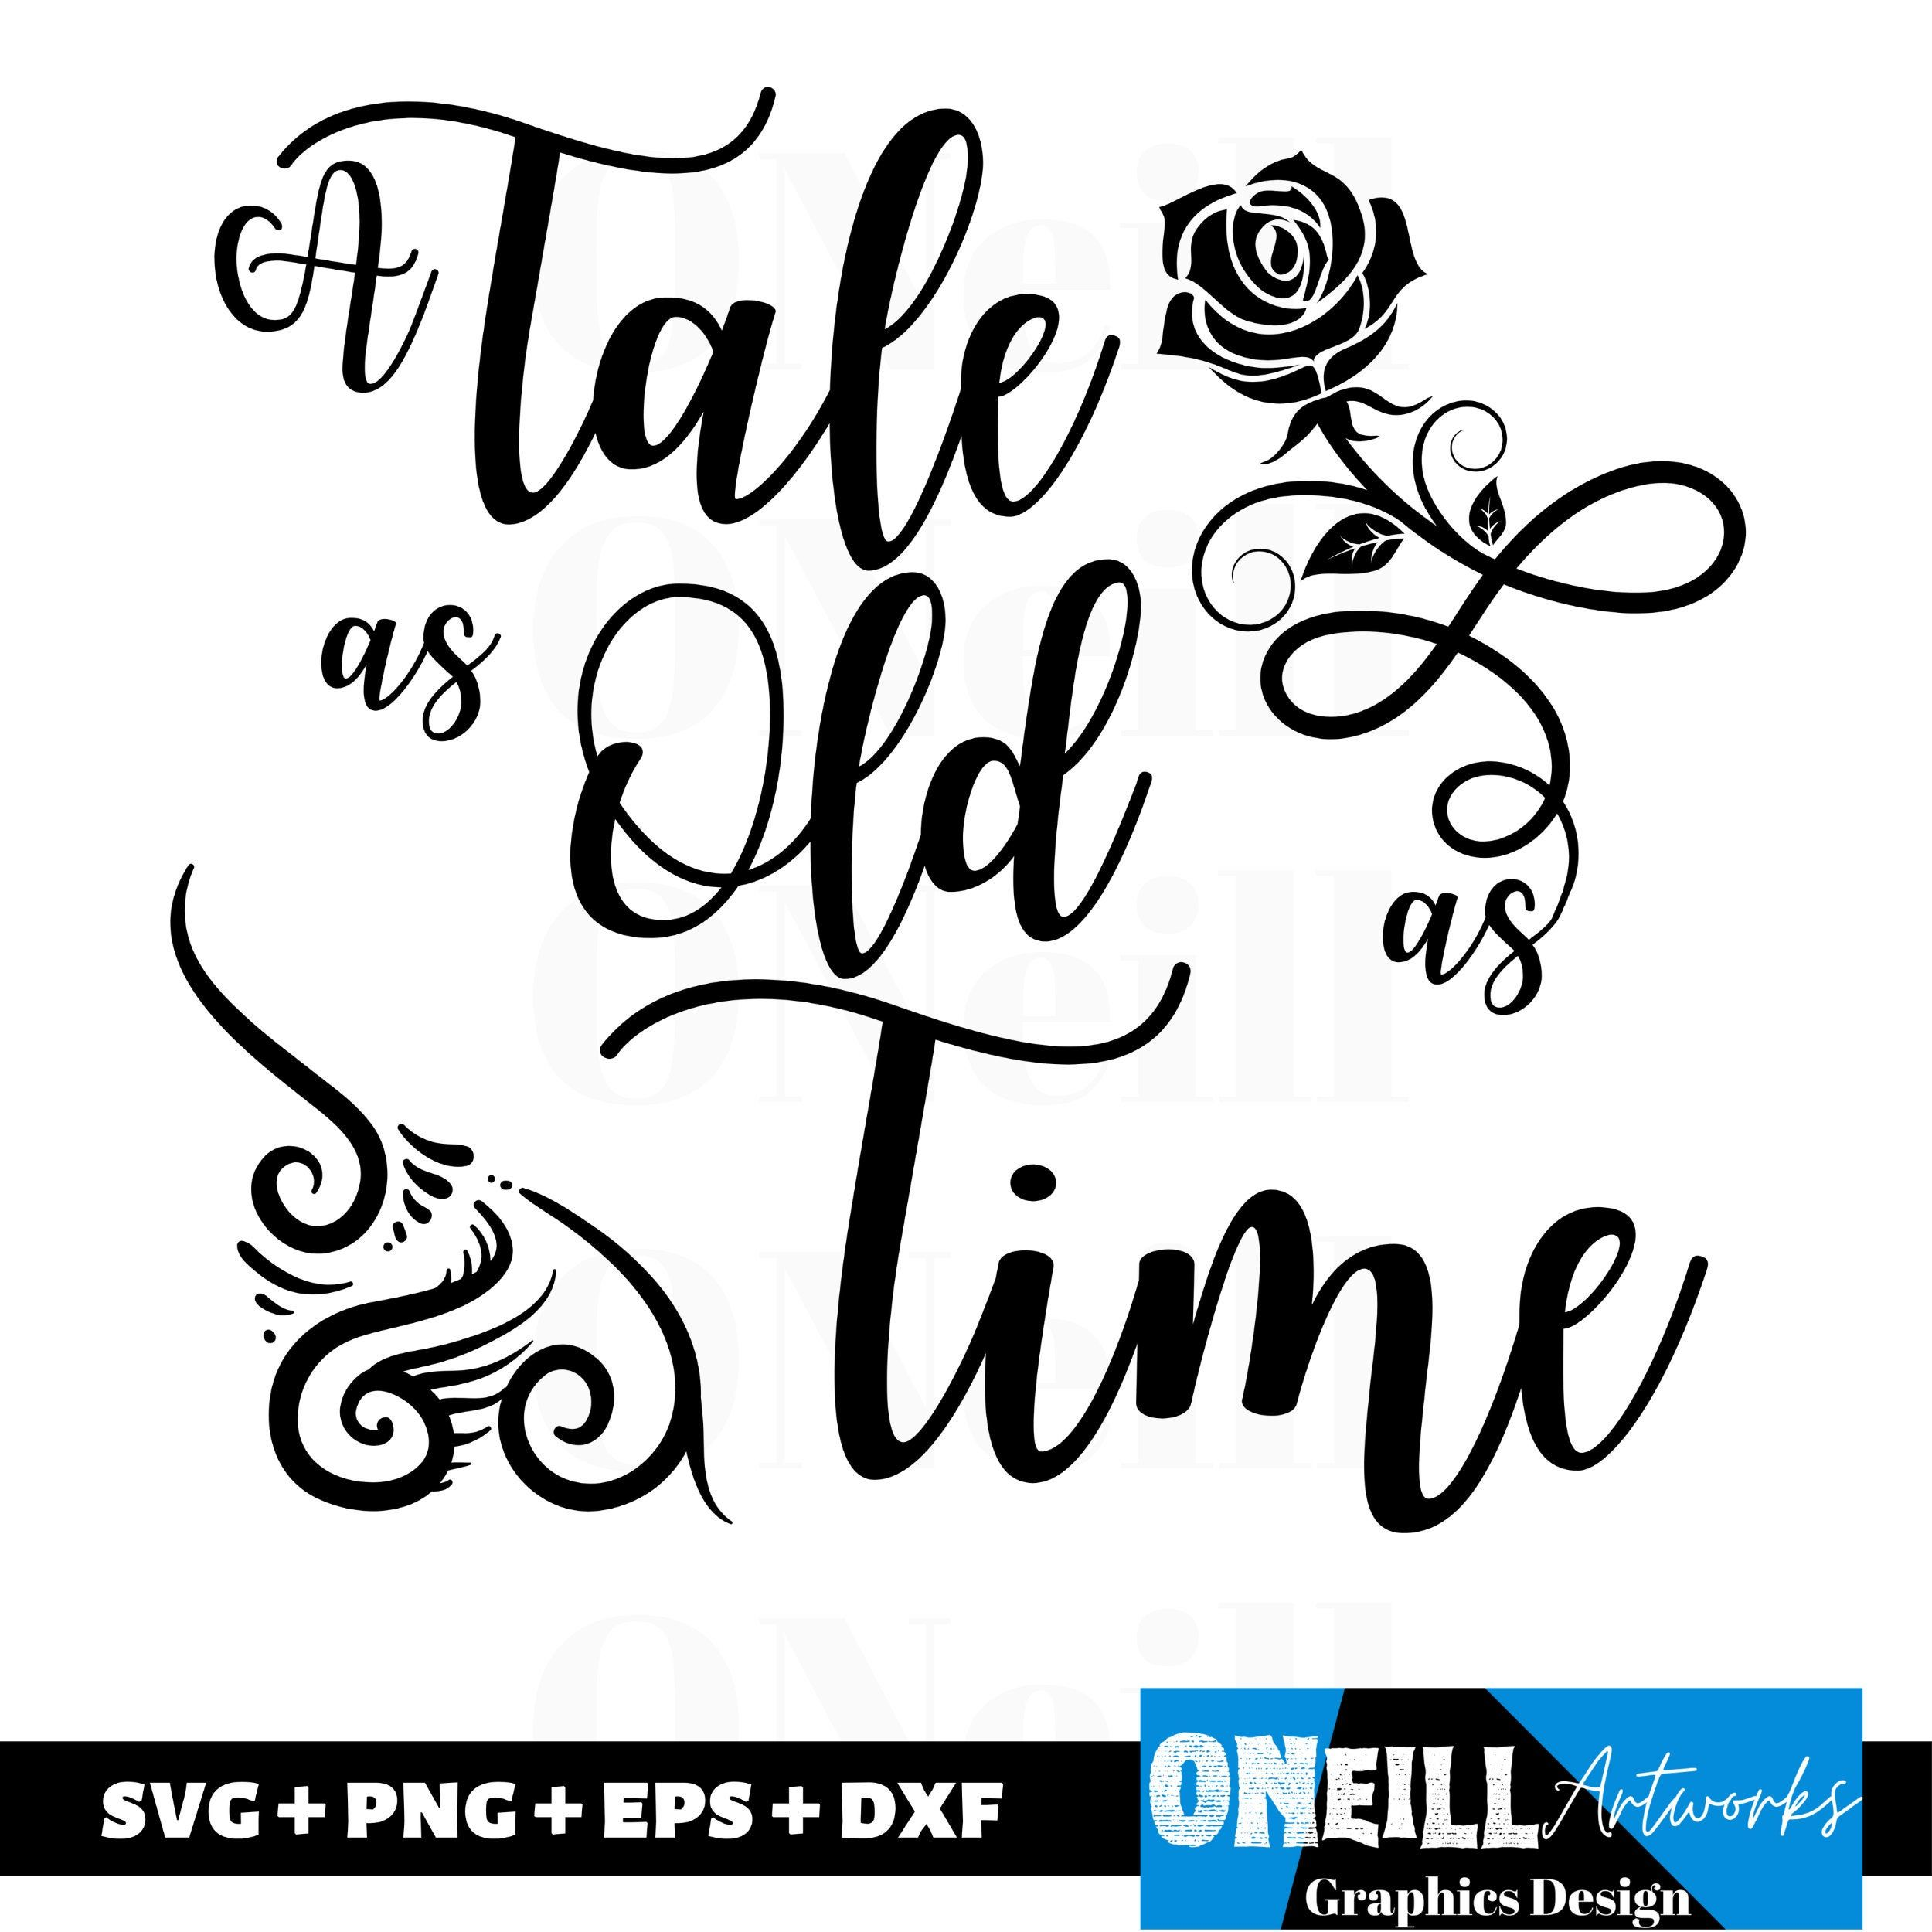 Beauty And The Beast Quote Svg Png Eps And Dxf Disney Party Etsy Svg Quotes Disney Tattoos Beauty And The Beast Beauty And The Beast Silhouette